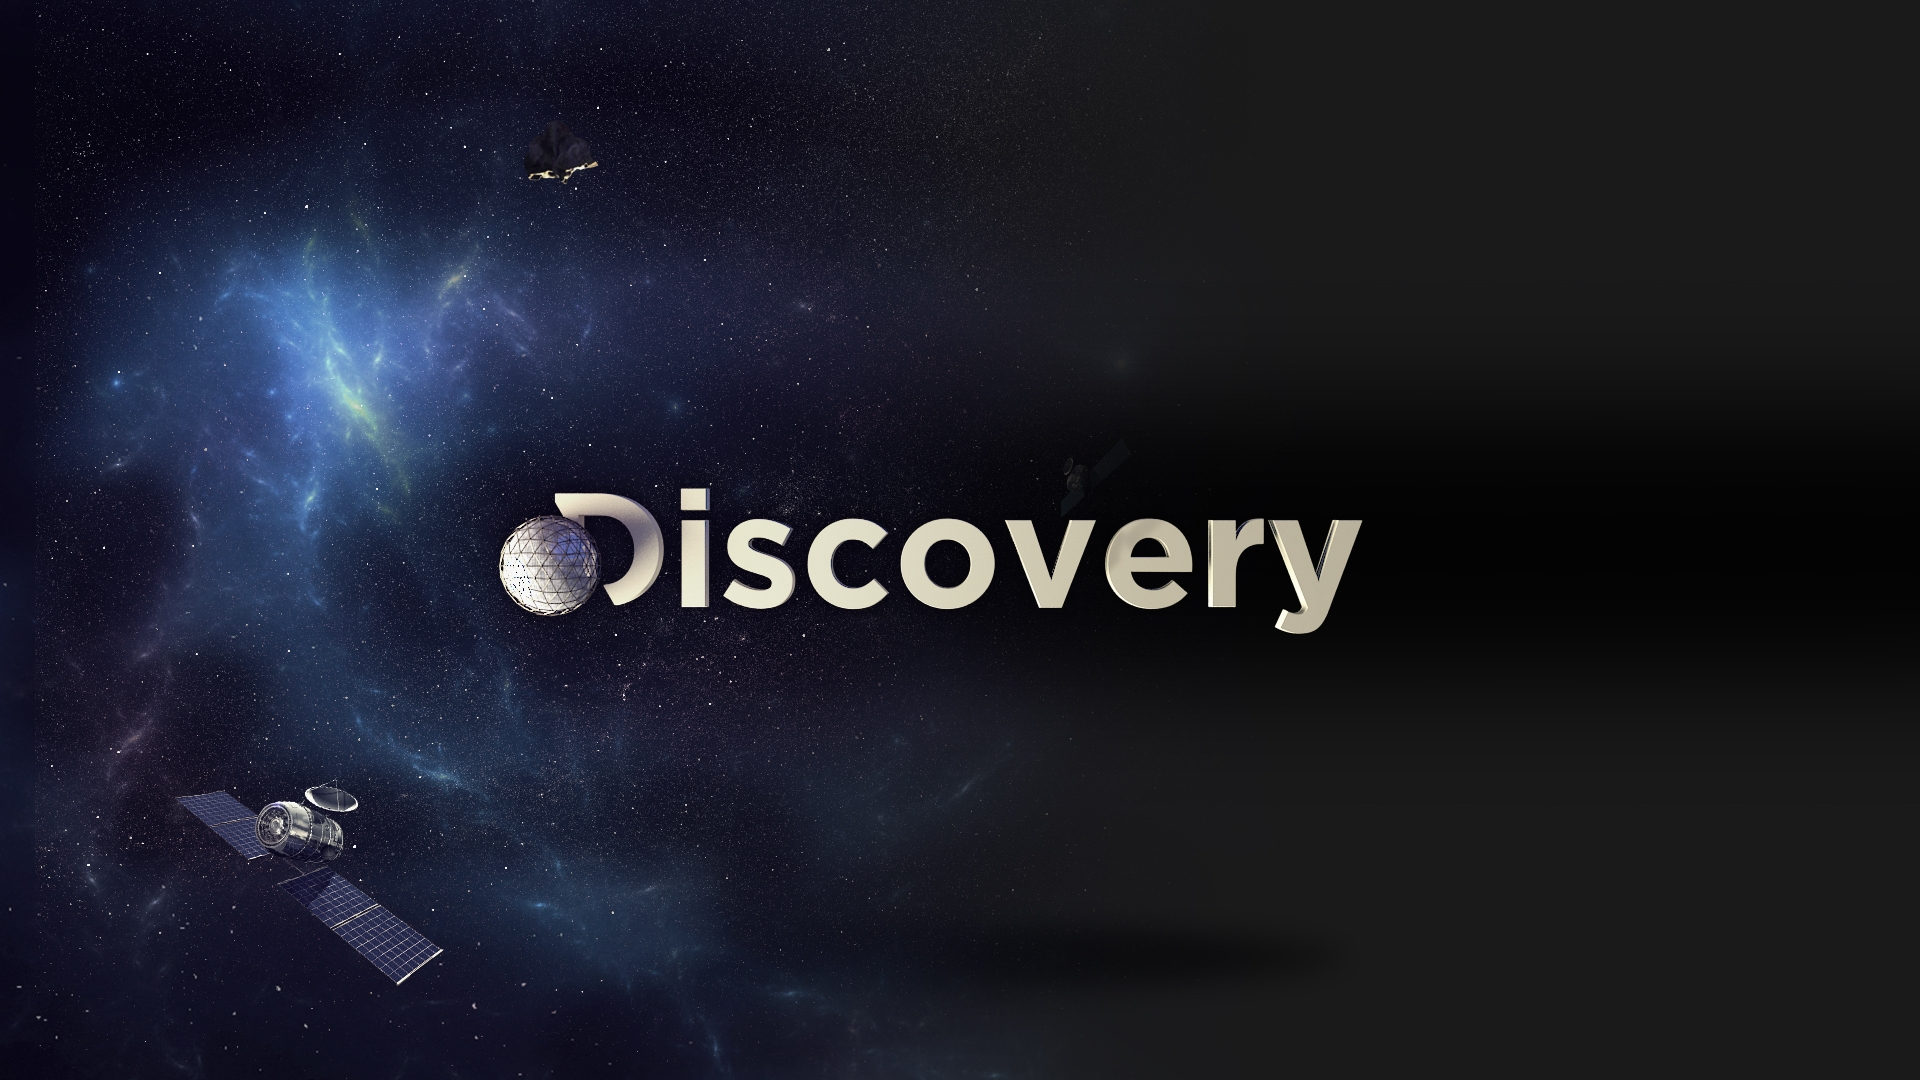 Discovery Earth Day - Ident Earth Day